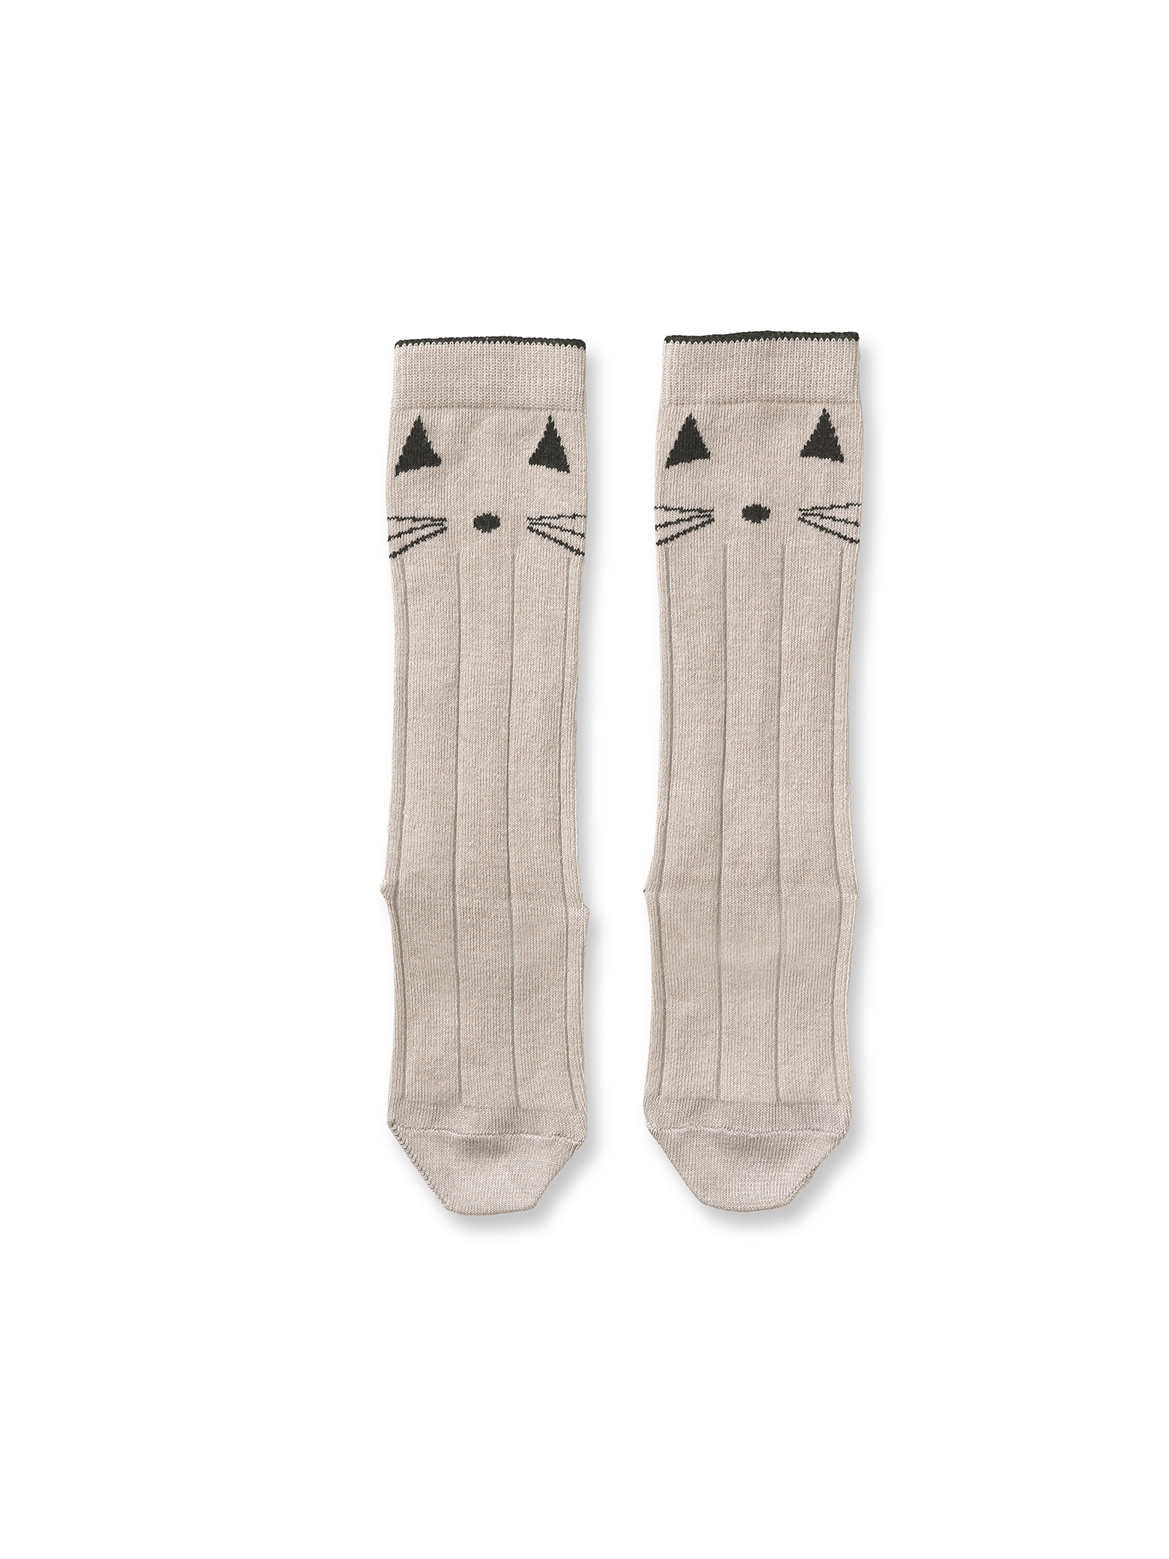 Liewood Pink - Sofia knee socks Cat - Accessories